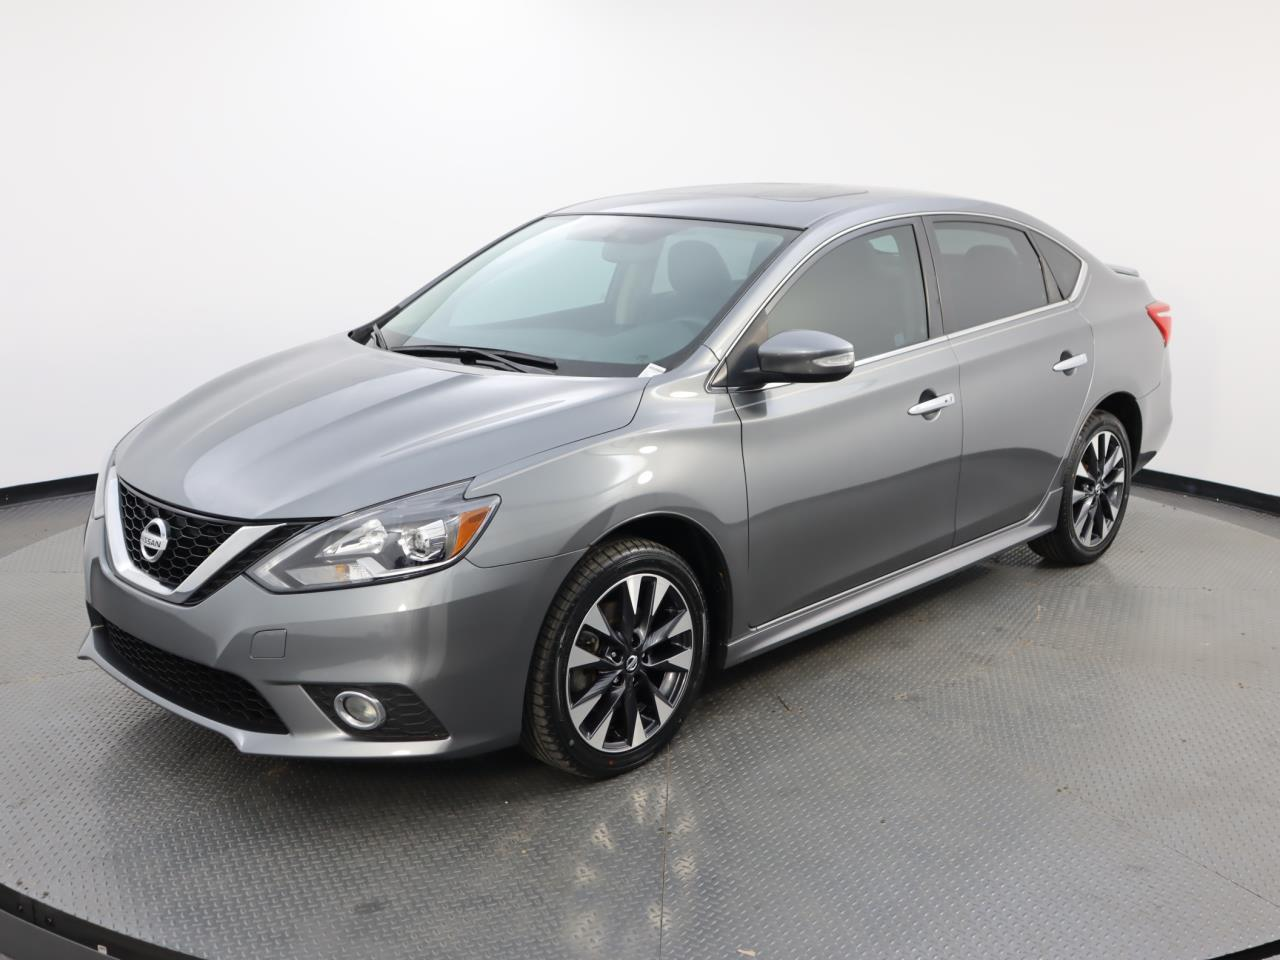 Used NISSAN SENTRA 2017 MIAMI SR TURBO